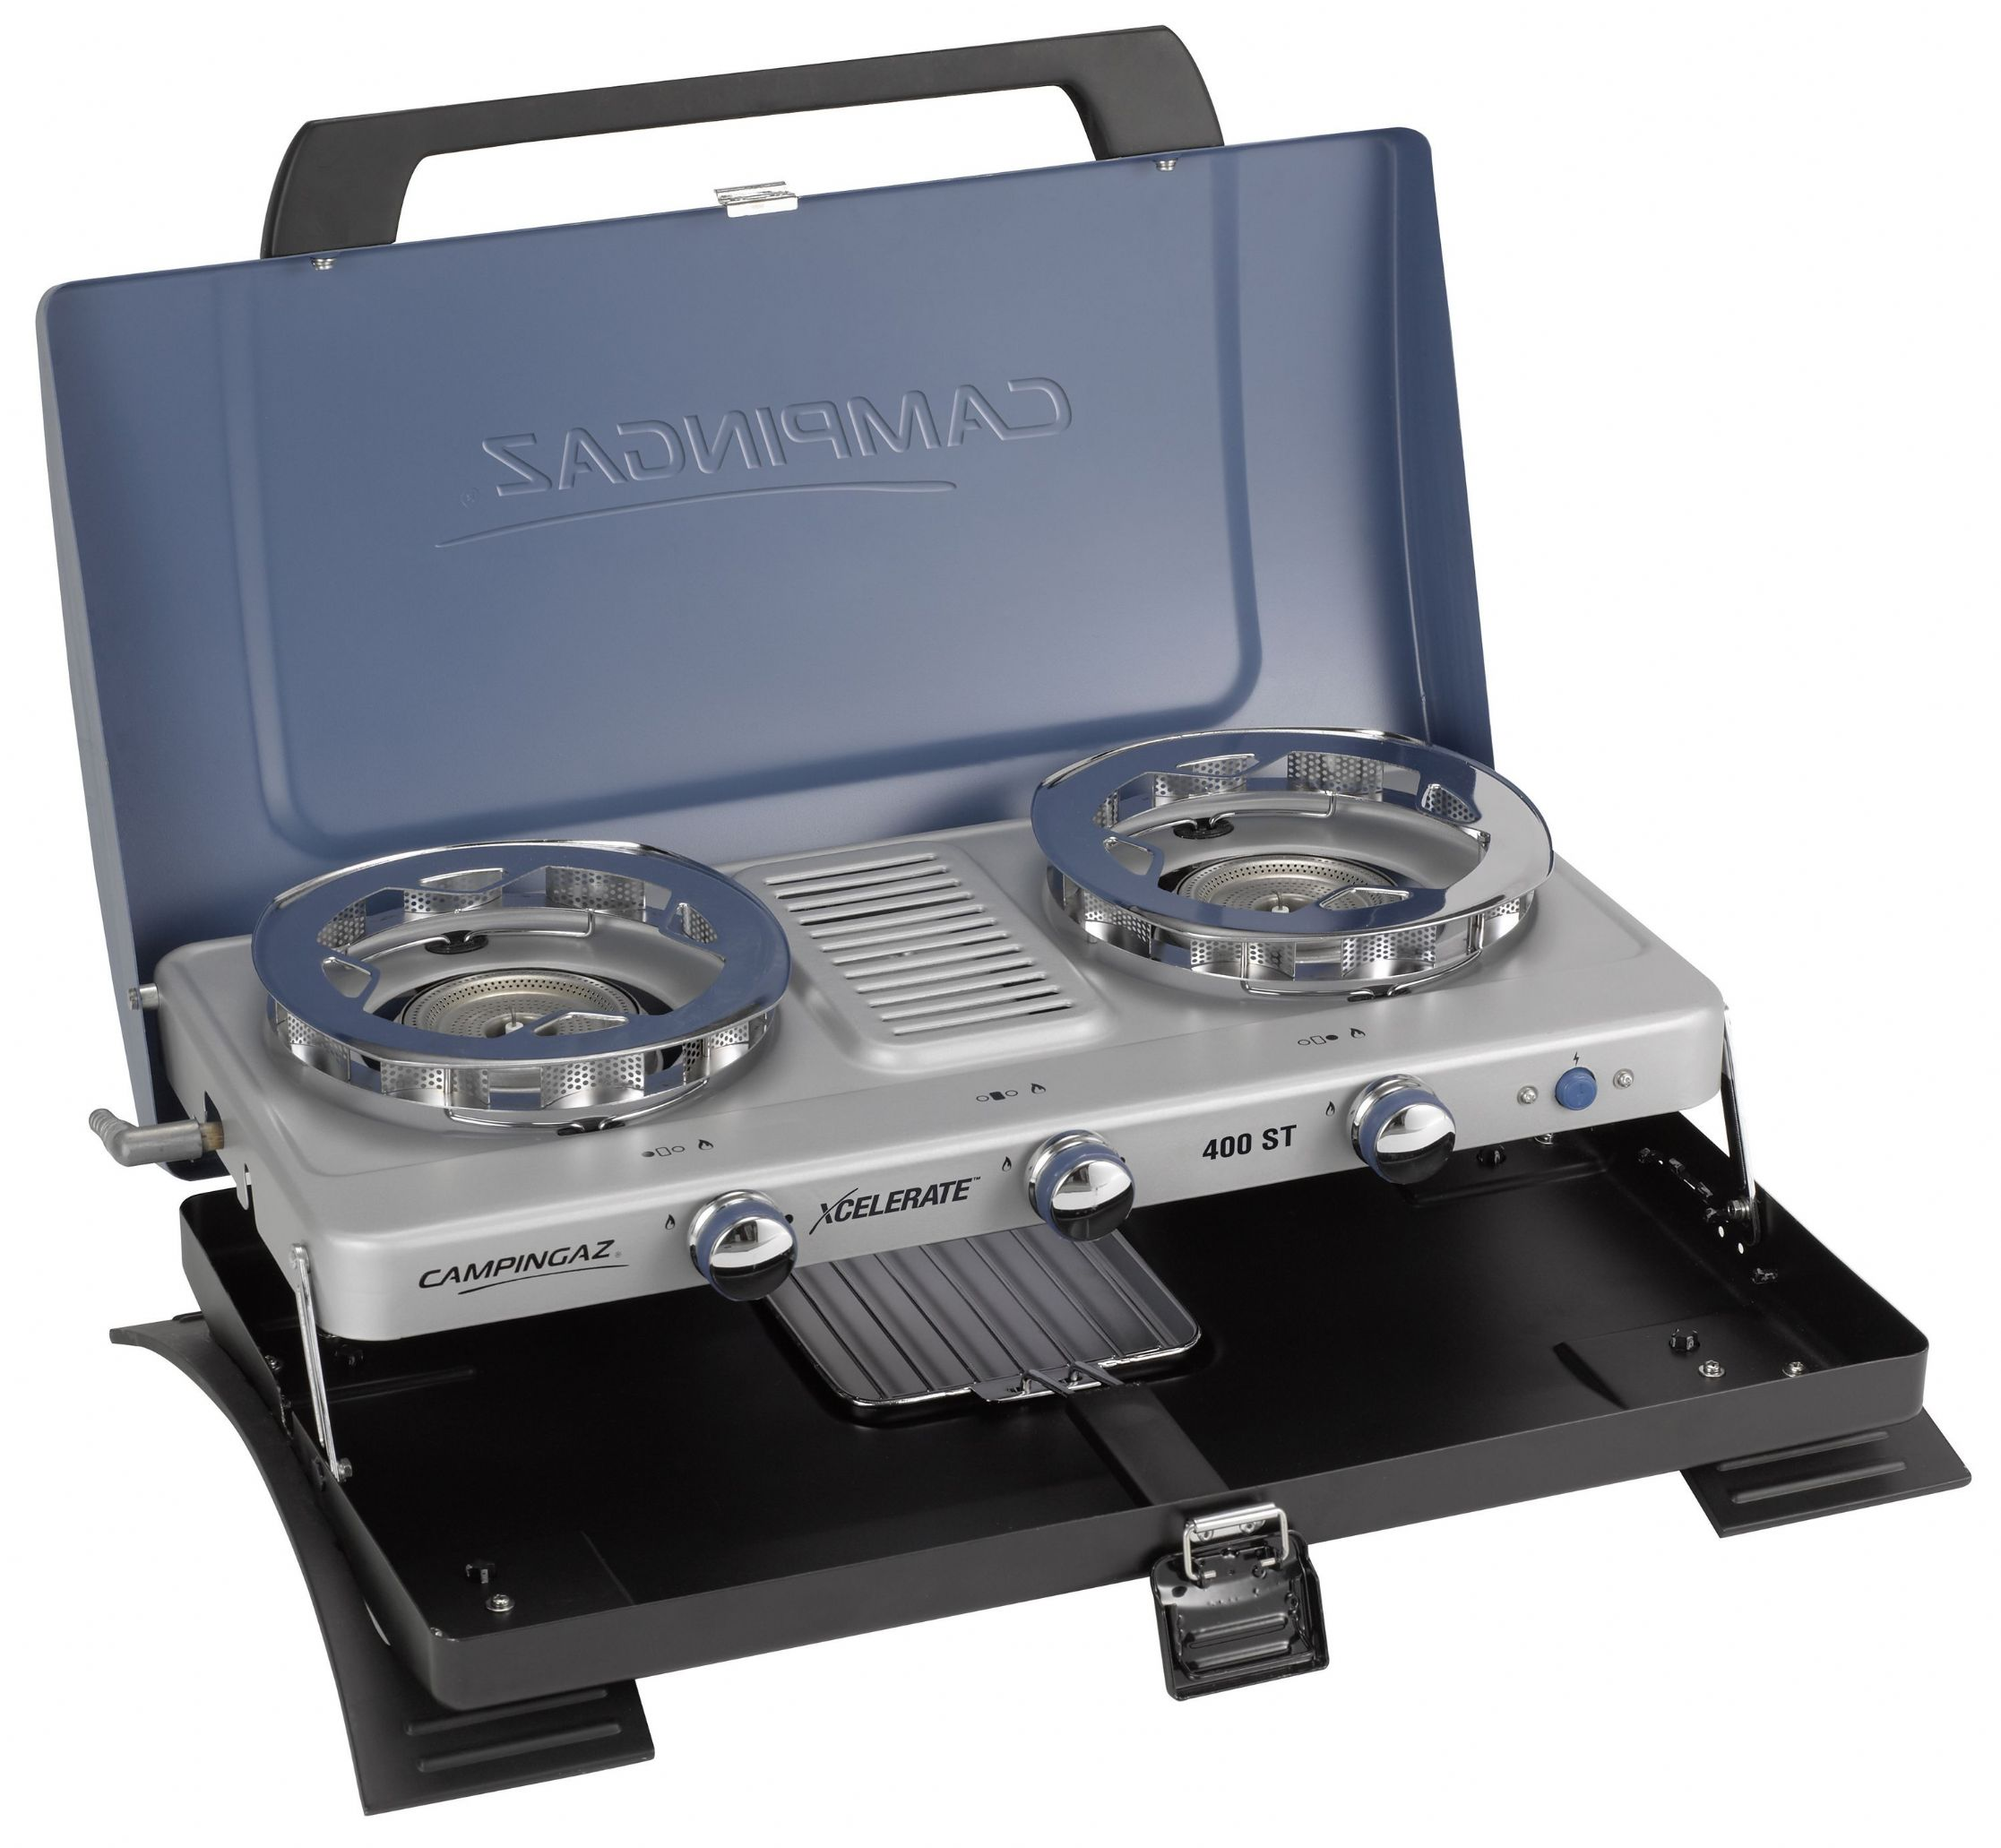 Campingaz 400-ST Double Burner & Toaster Portable Camping Stove, Portable stoves, fishing ...